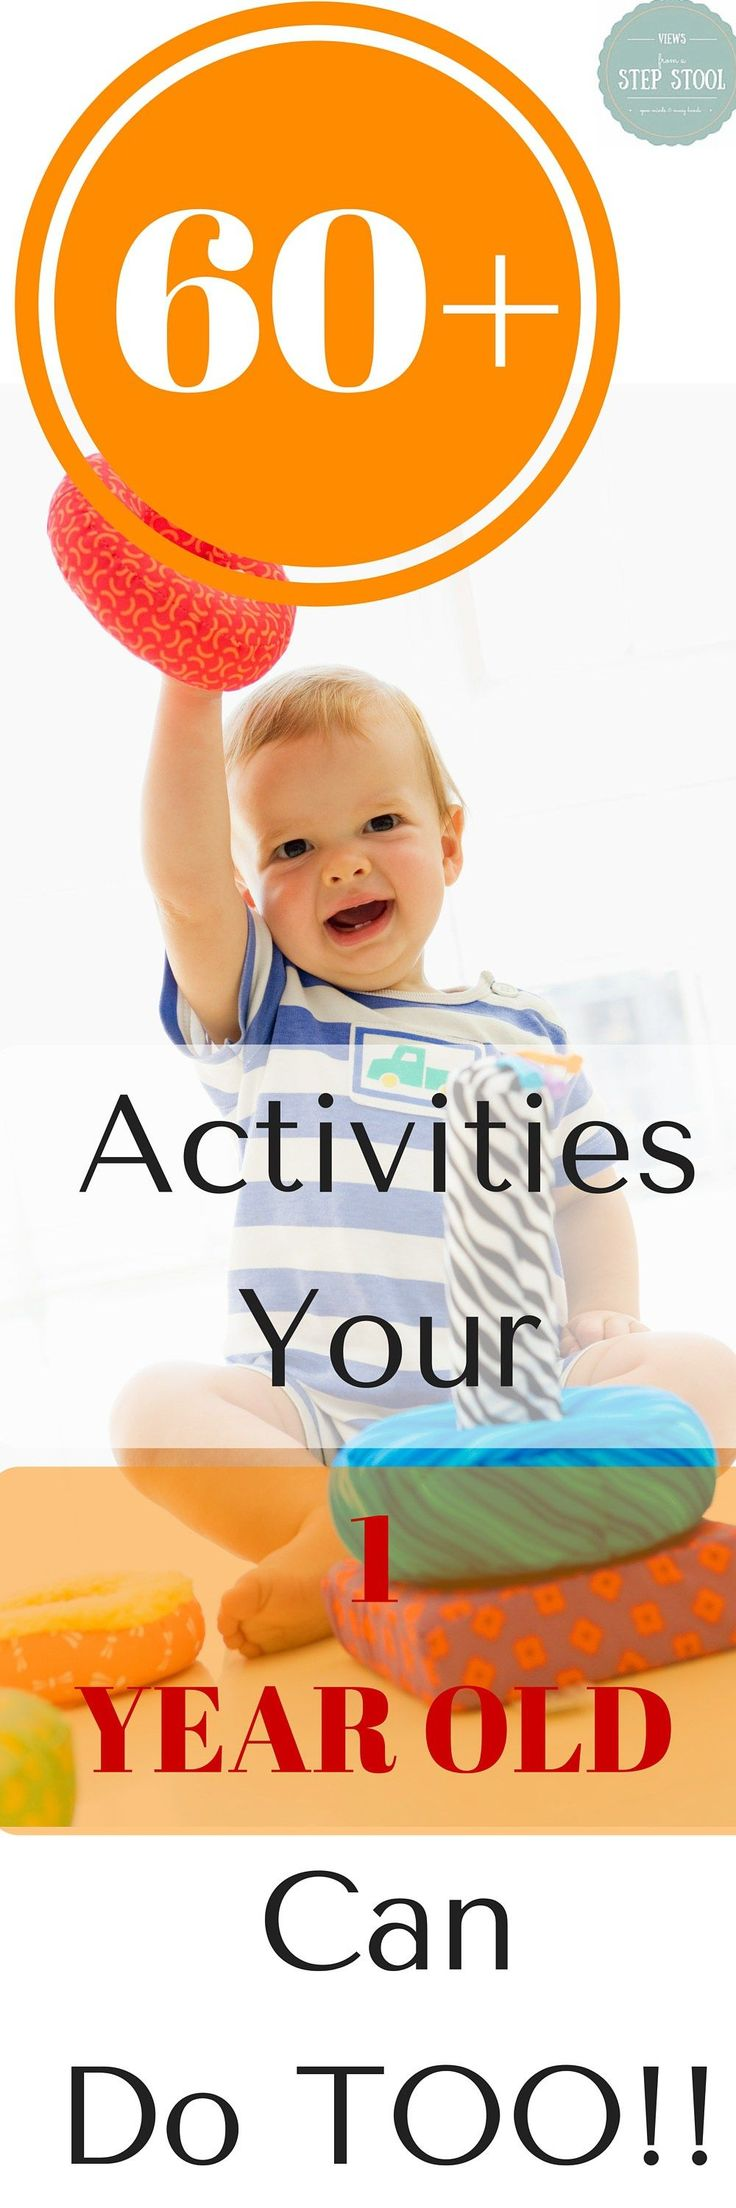 You can find TONS of activities for toddlers and preschoolers to do from fun sensory play to fantastic busy bags. The only problem is that a lot of this awesomeness is not geared for a one year old. These are the kiddos that are very active and engaged, but still have a hard time sitting still or put everything in their mouth..